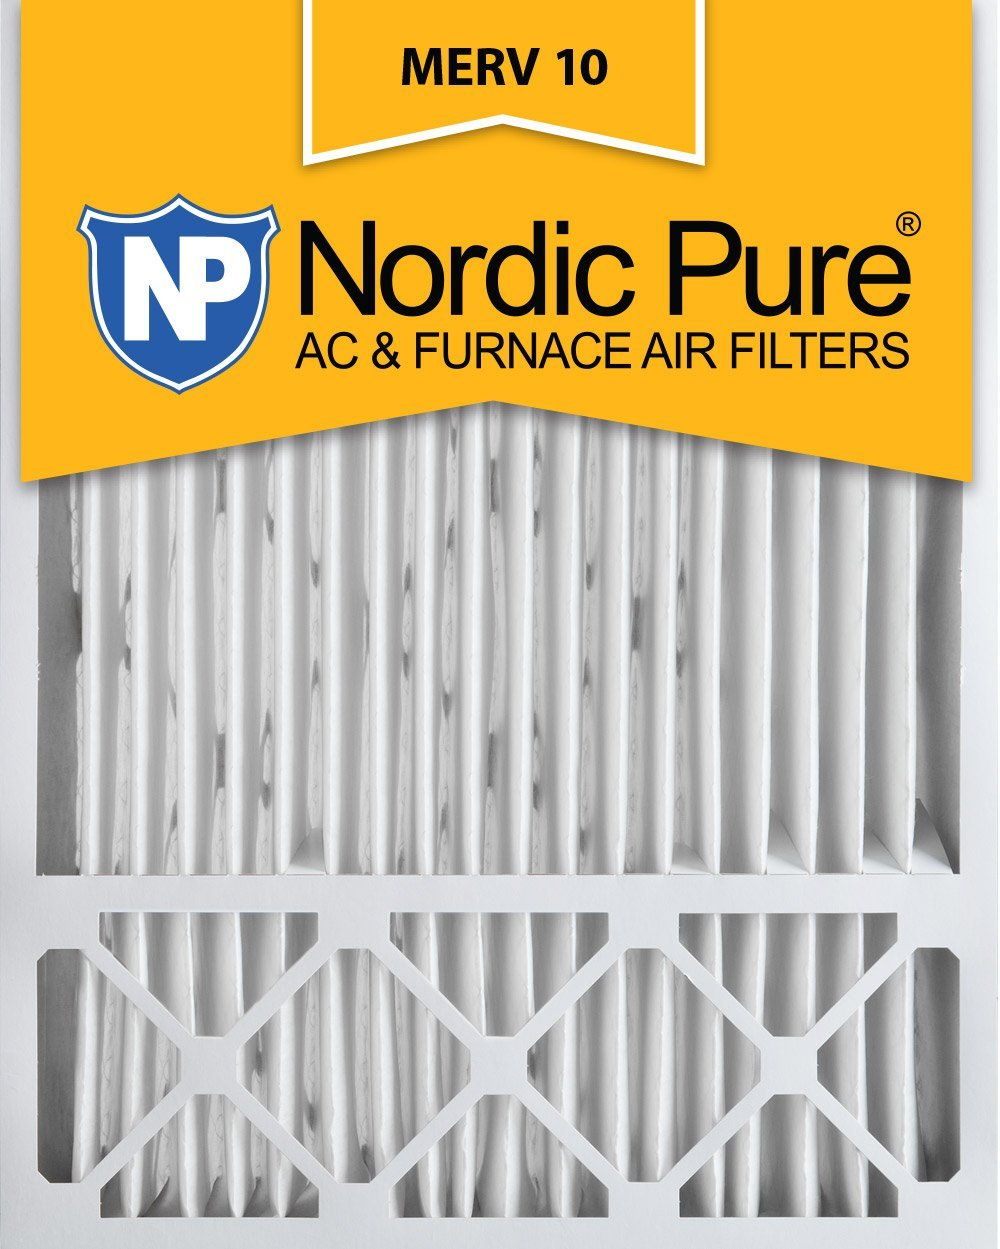 Nordic Pure 20x25x5 (4-3/8 Actual Depth) MERV 10 Honeywell Replacement Pleated AC Furnace Air Filter, Box of 4